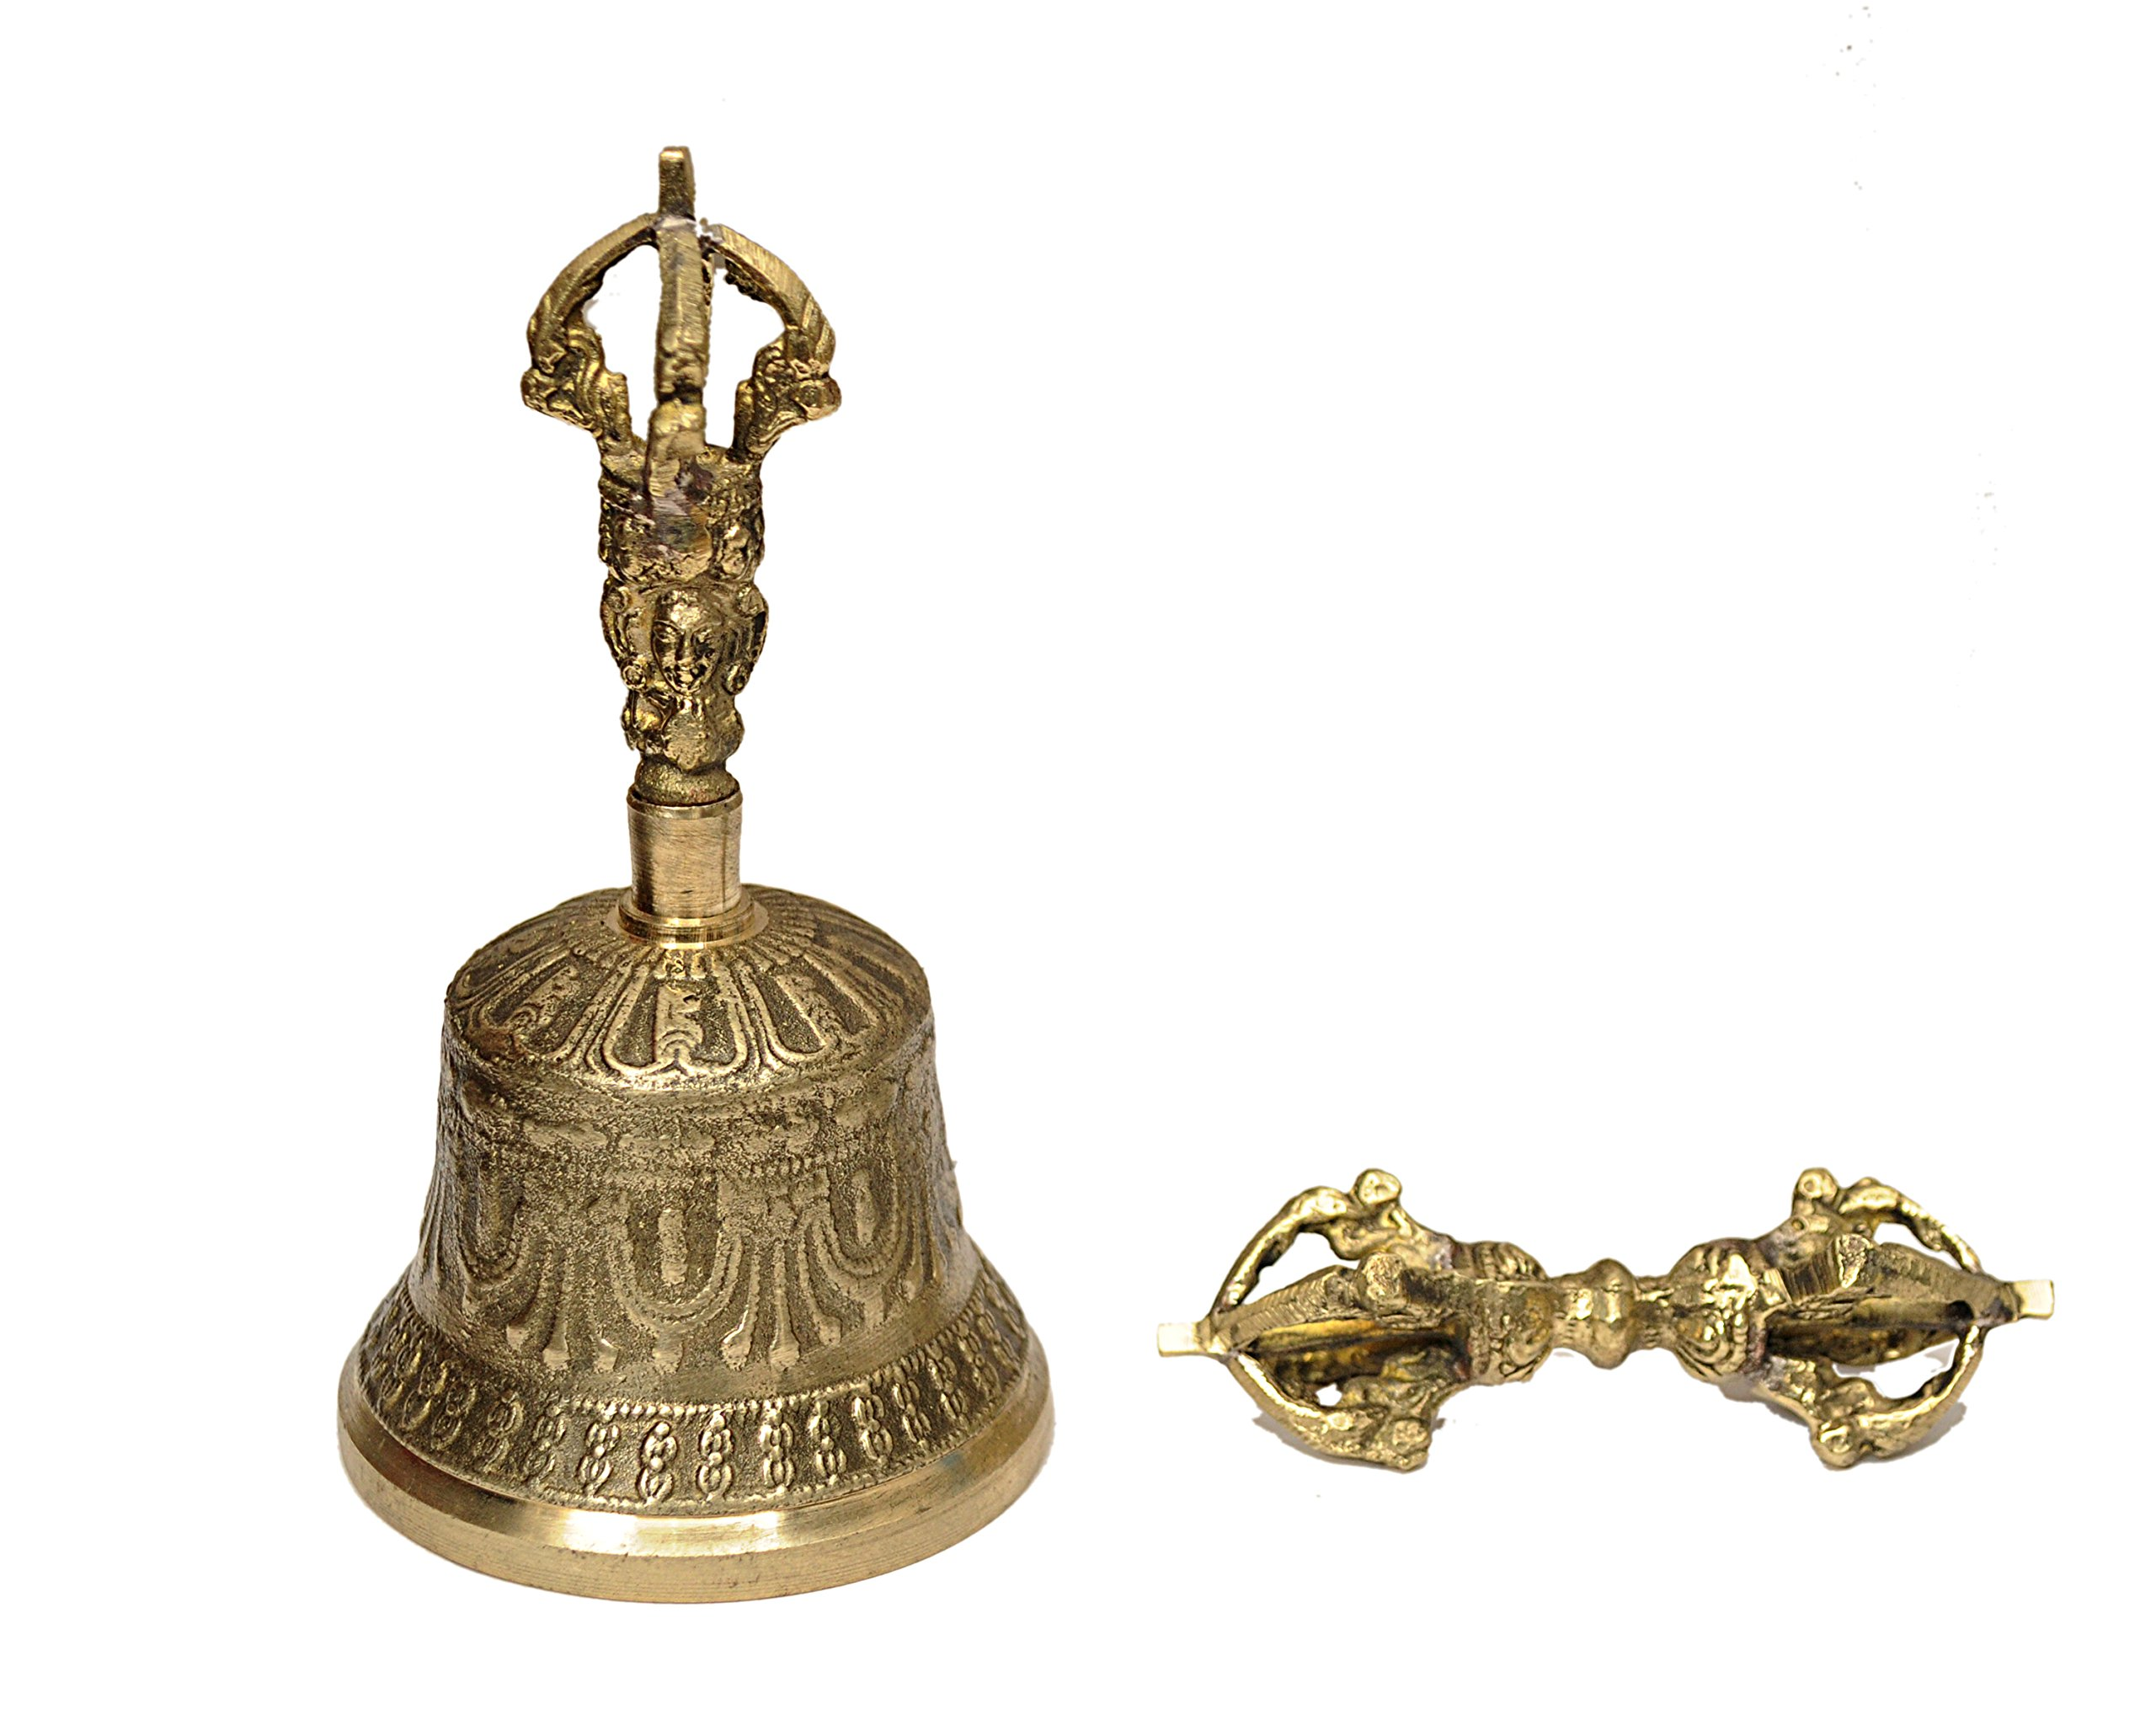 Dharma Store - Tibetan Buddhist Meditation Bell and Dorje Set by Dharma Store